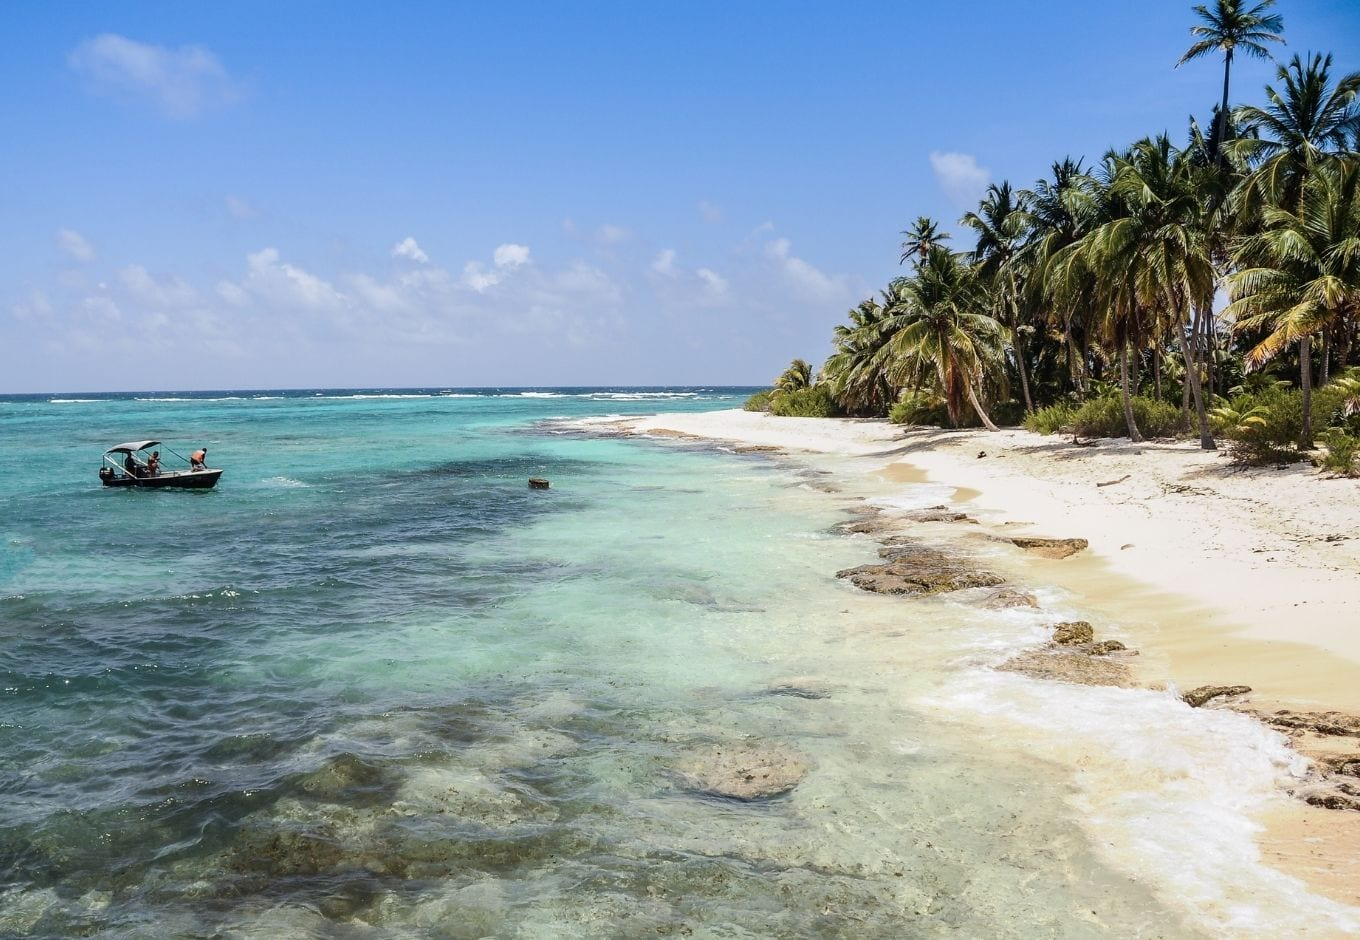 White sandy beach with palm trees and transparent blue-green water at San Andrés, in Colombia, South America.